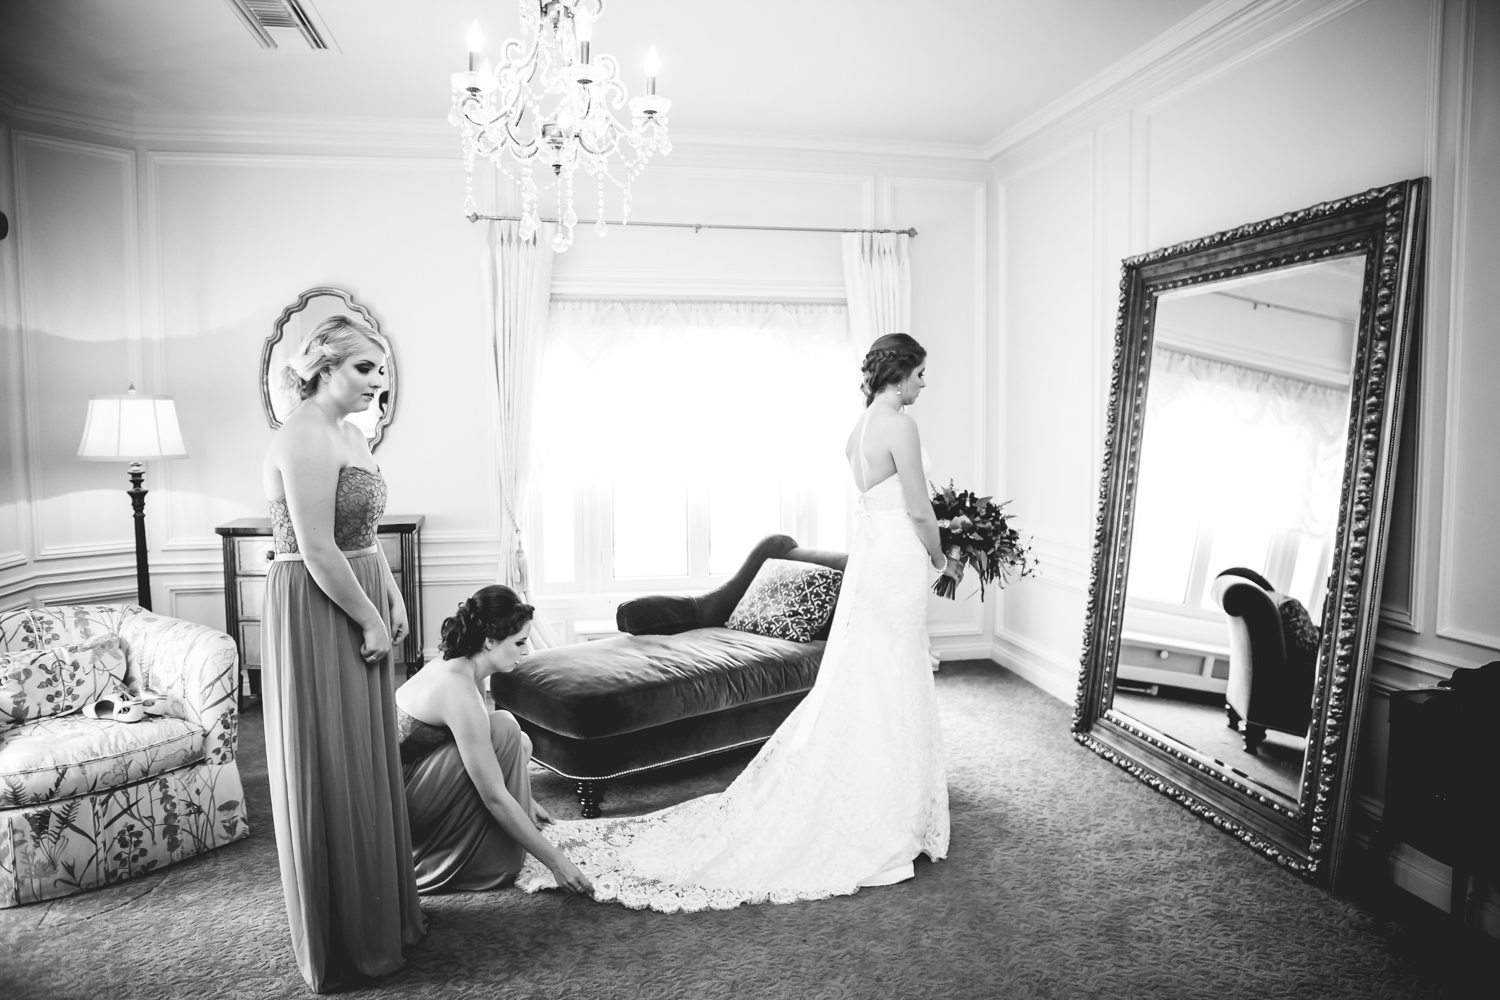 Bride getting ready in bridal suite at Highlands Ranch Mansion. Photographed by JMGant Photography, Denver Colorado wedding photographer.